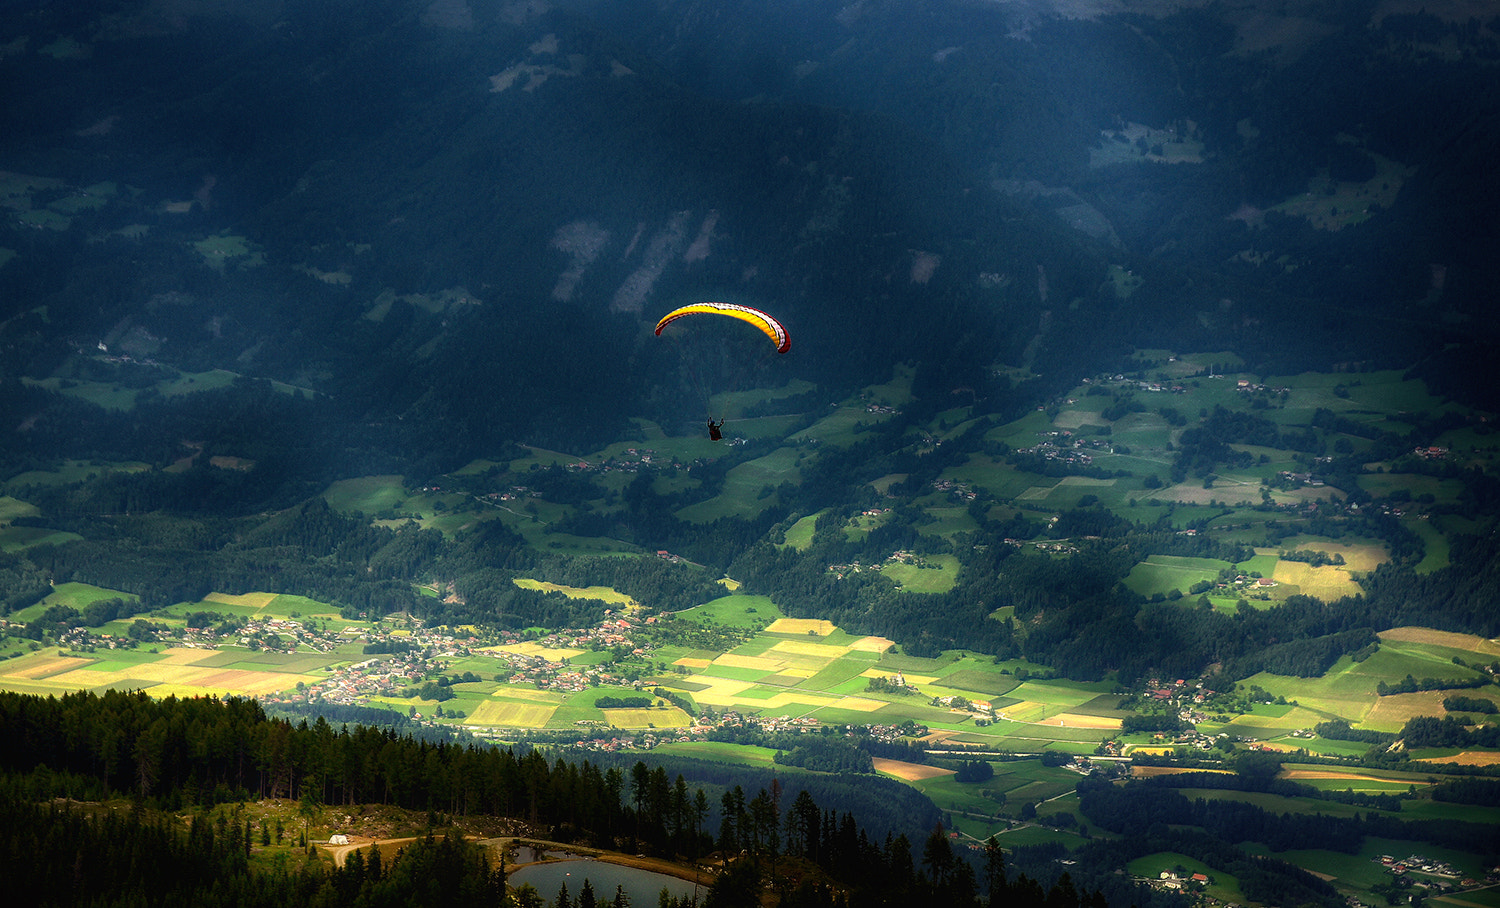 Photograph flight by Andy 58 on 500px